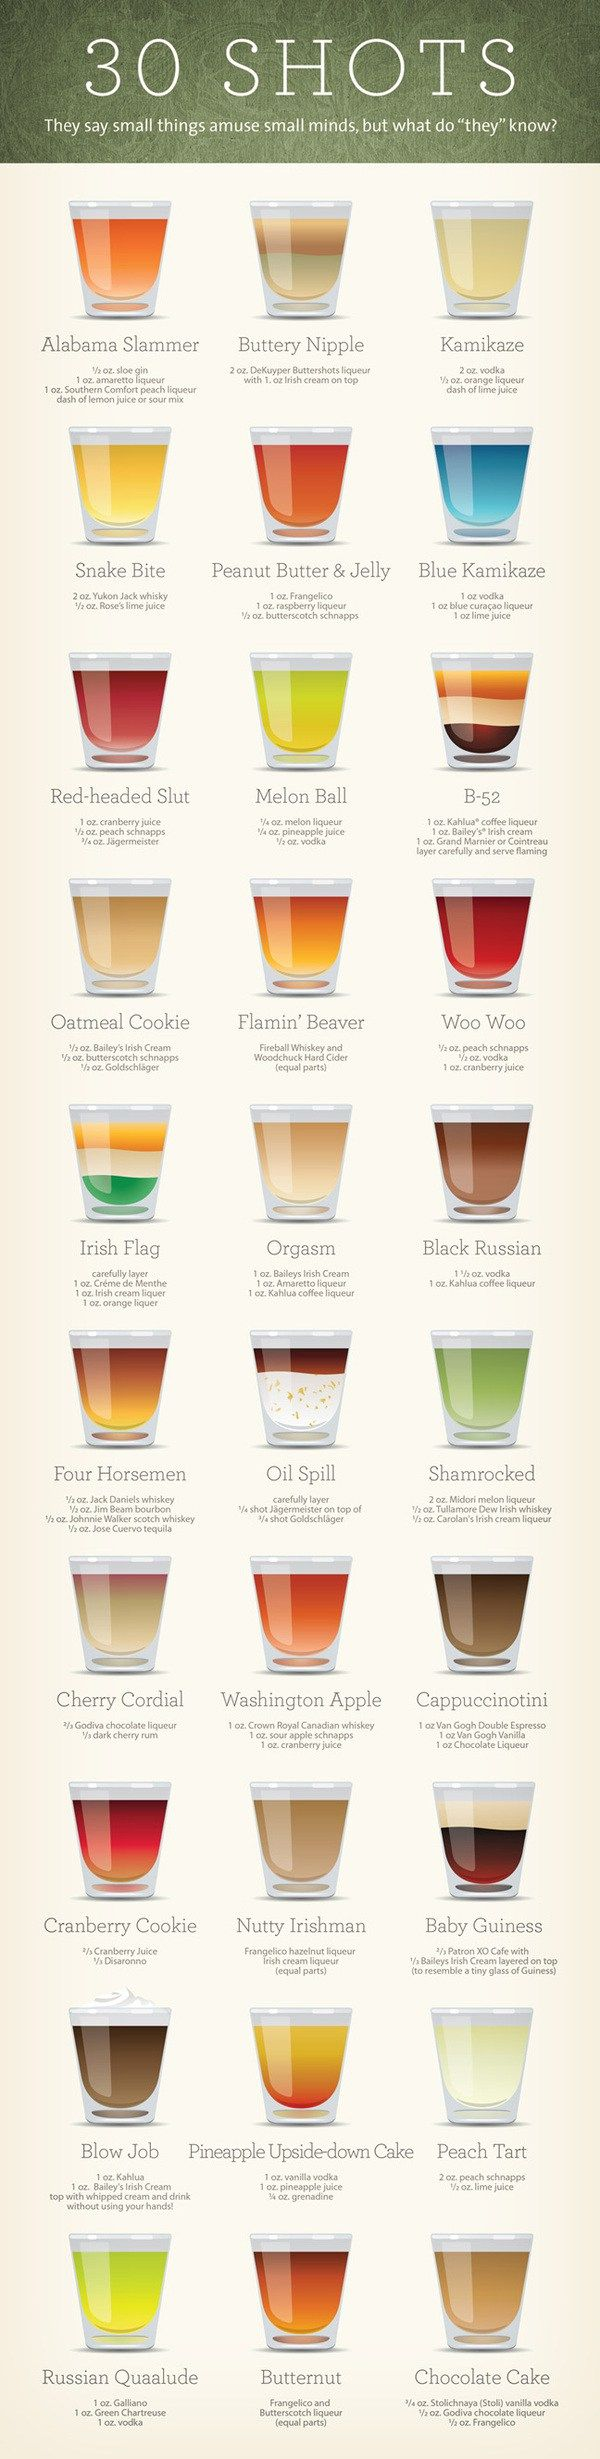 Here you can see a cool infographic that teach you how to make 30 of the most famous shots. Source: BestInfographics